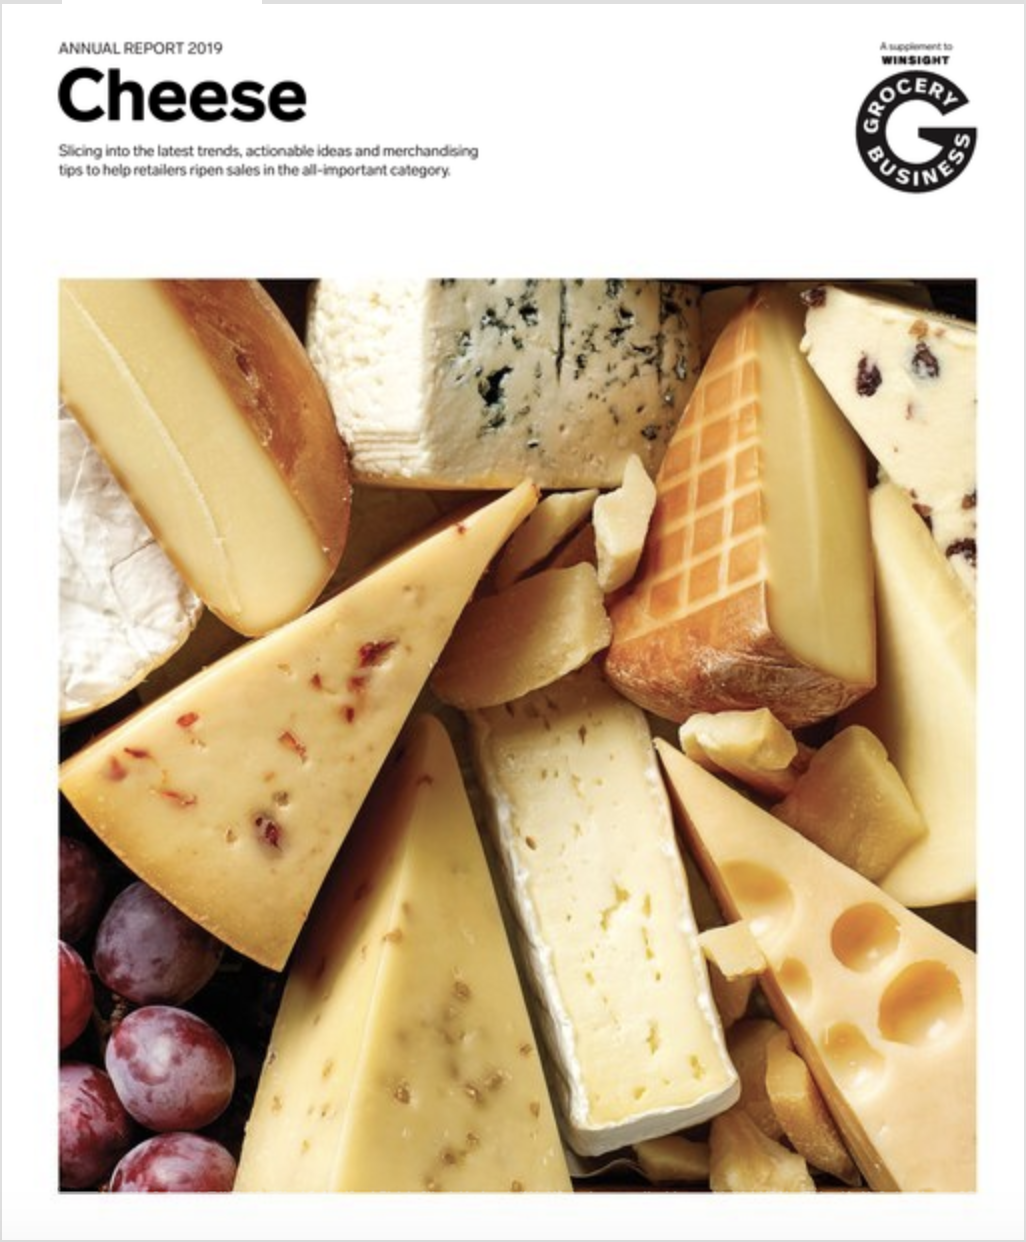 Winsight Grocery Business Magazine 2019 Annual Report: Cheese Issue